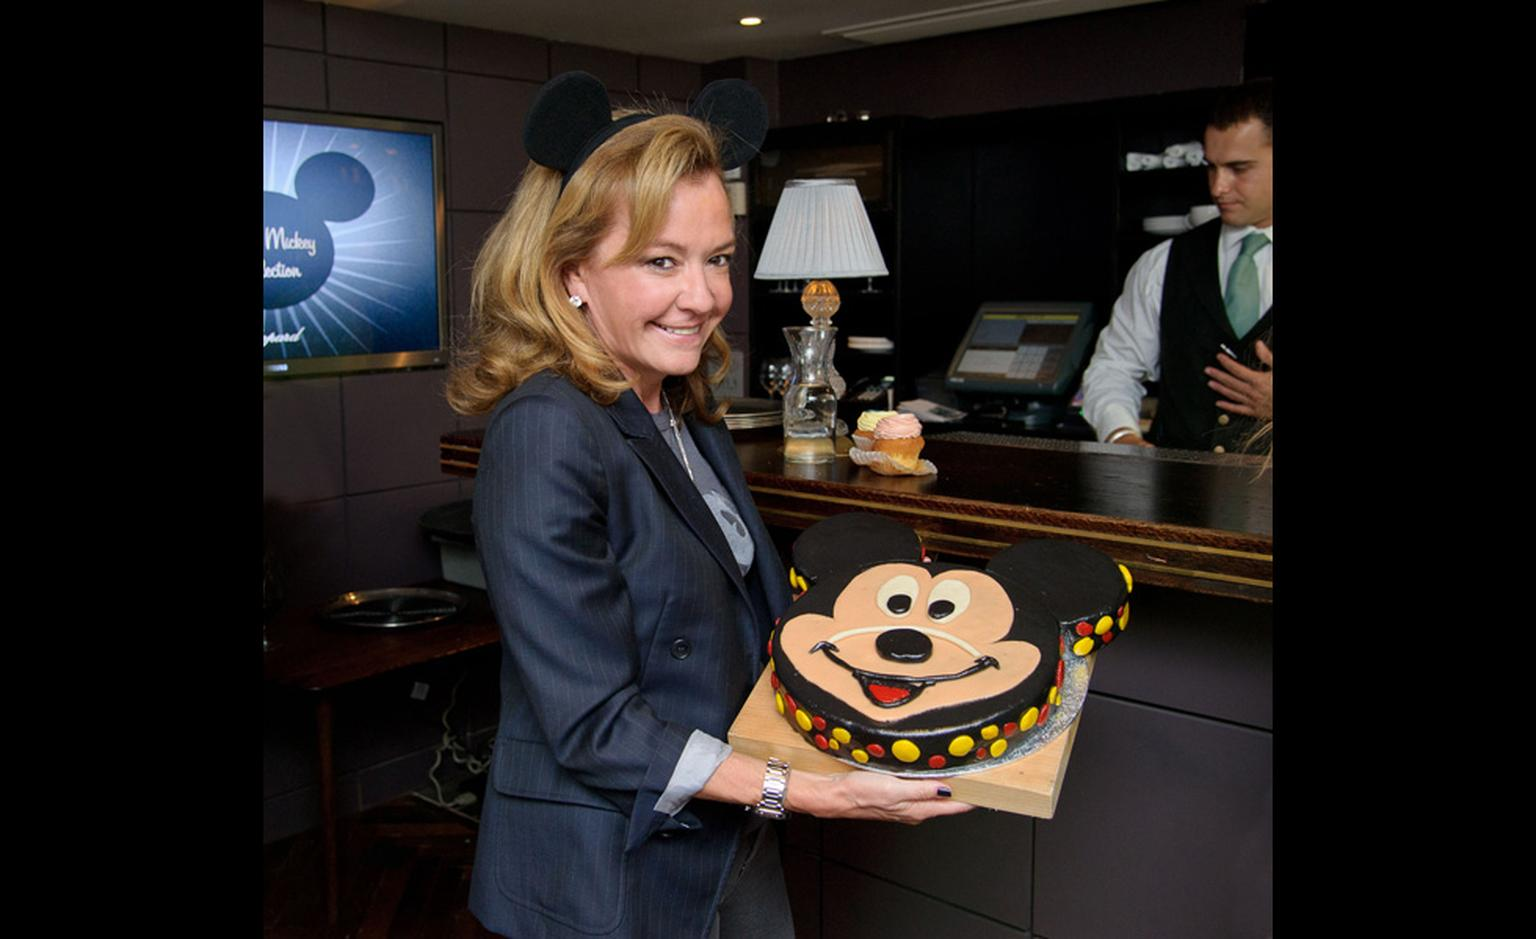 Caroline Scheufele, co-President of Chopard, with the giant Mickey Mouse brownie cake